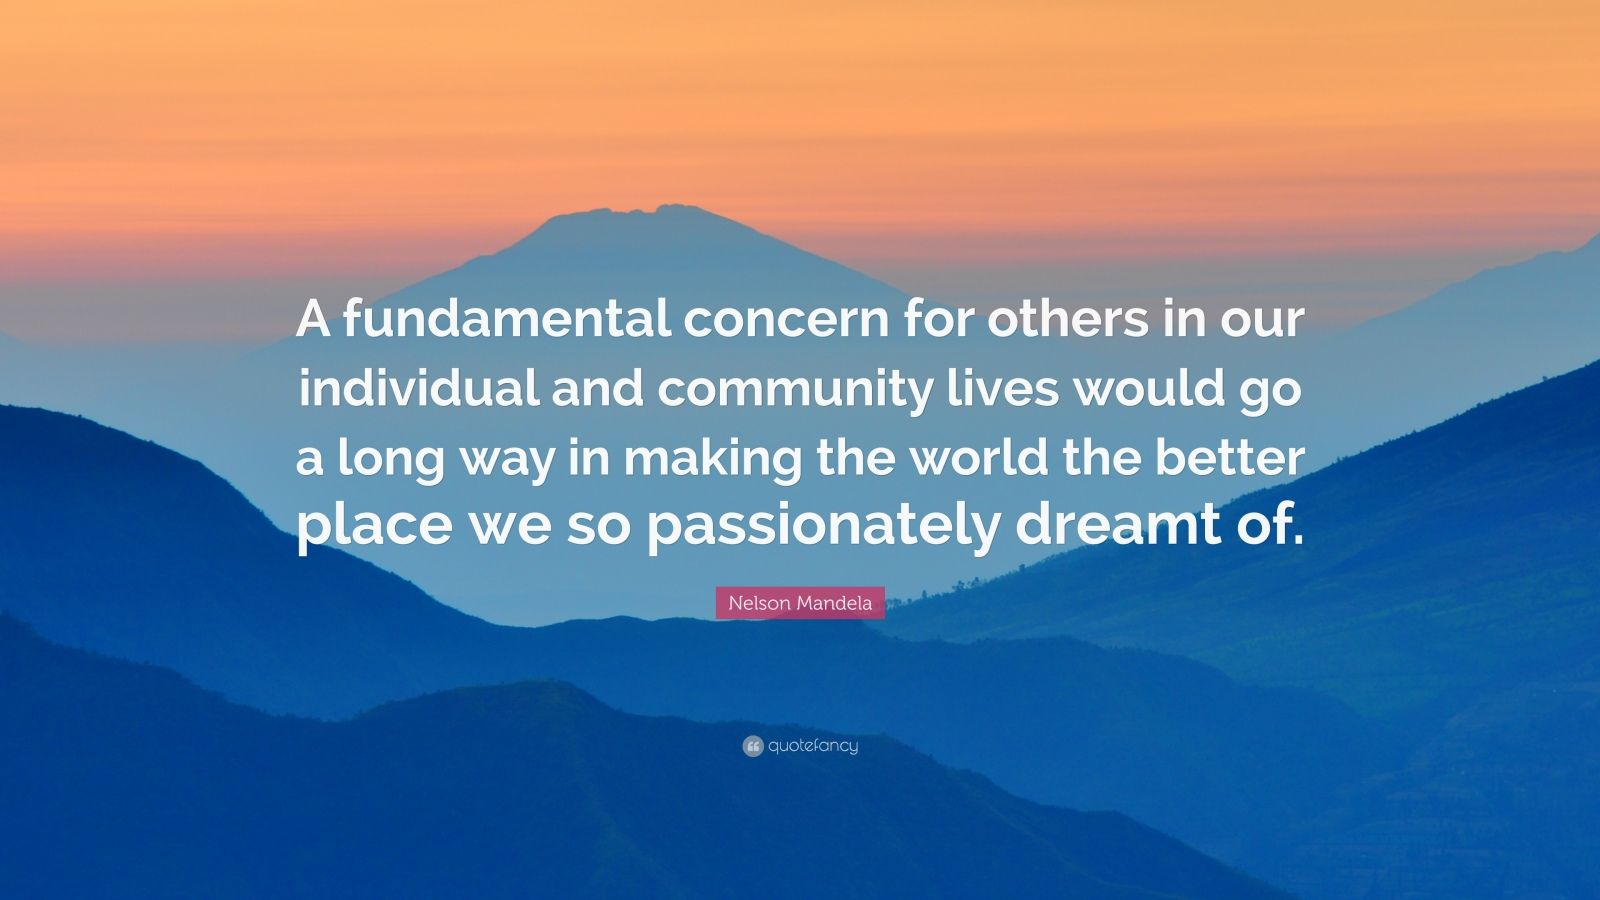 """Nelson Mandela Quote: """"A fundamental concern for others in our individual and community lives would go a long way in making the world the better place we so passionately dreamt of."""""""